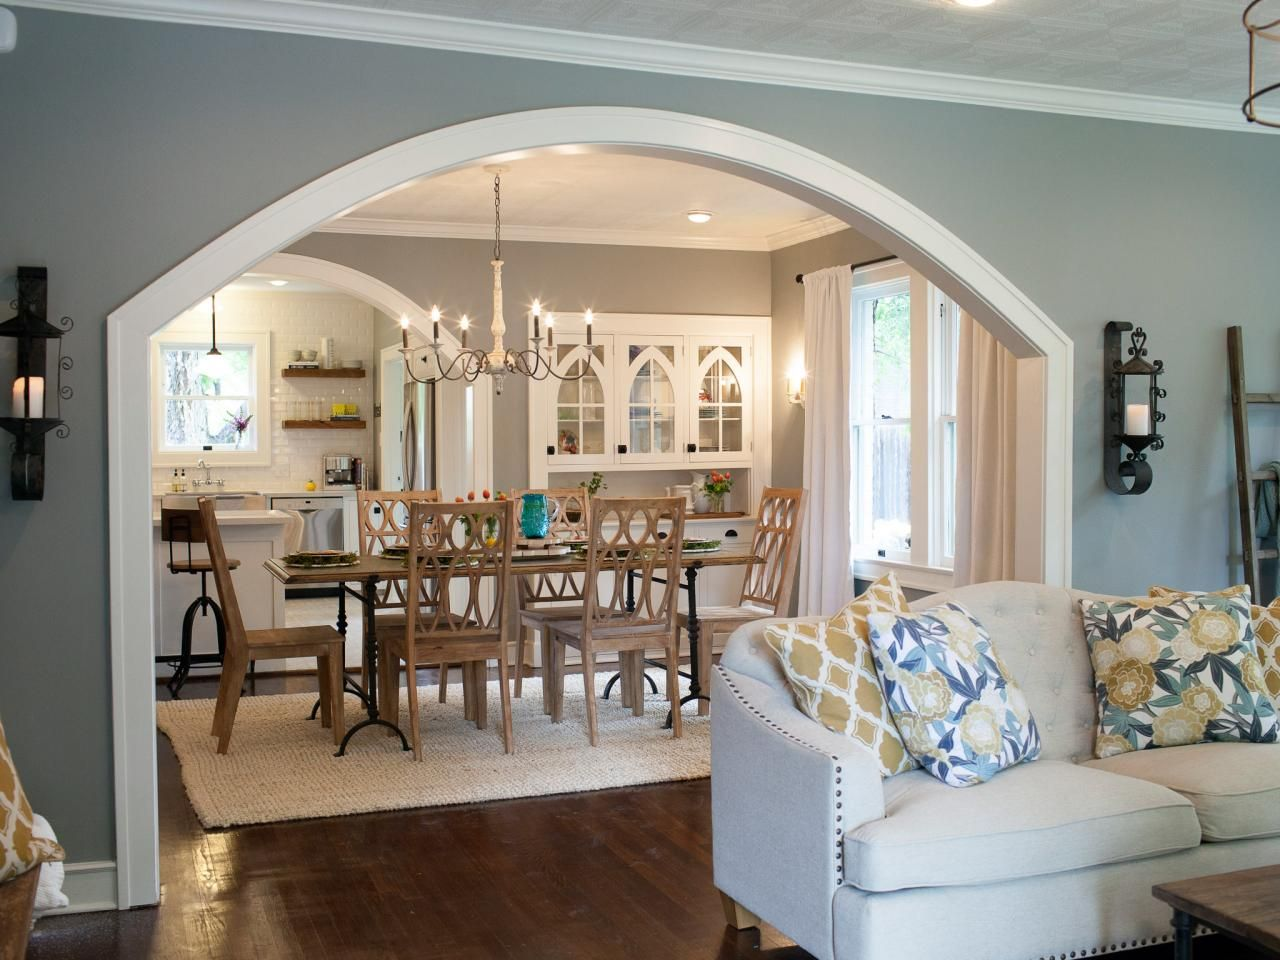 Photos hgtv 39 s fixer upper with chip and joanna gaines for Designs of arches in living room